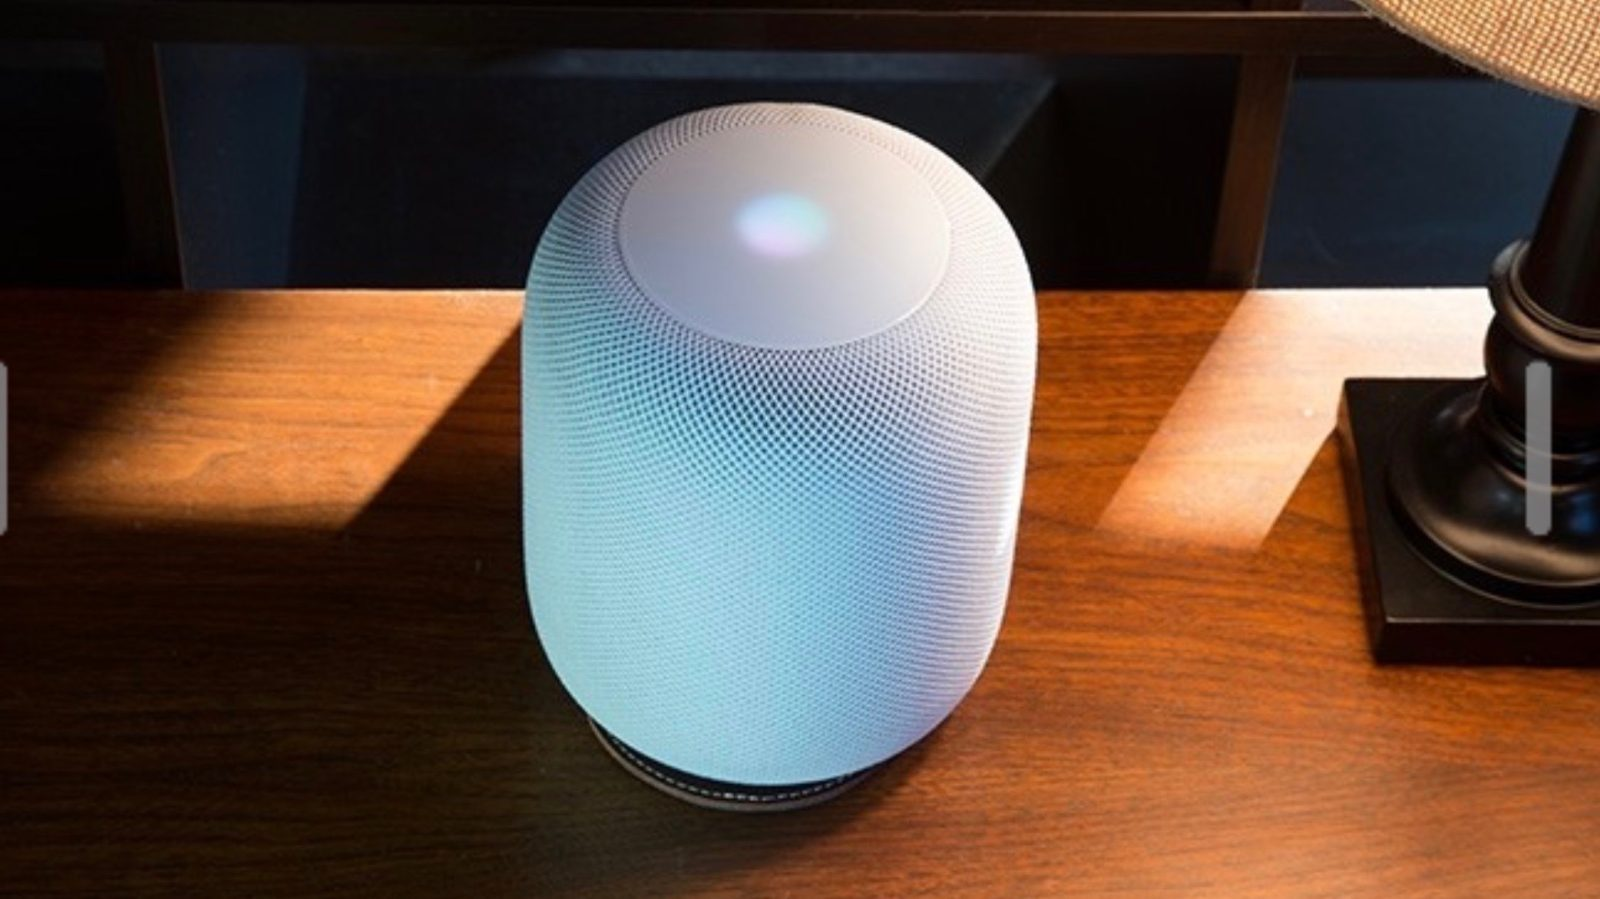 How To Use Homepod Without Internet